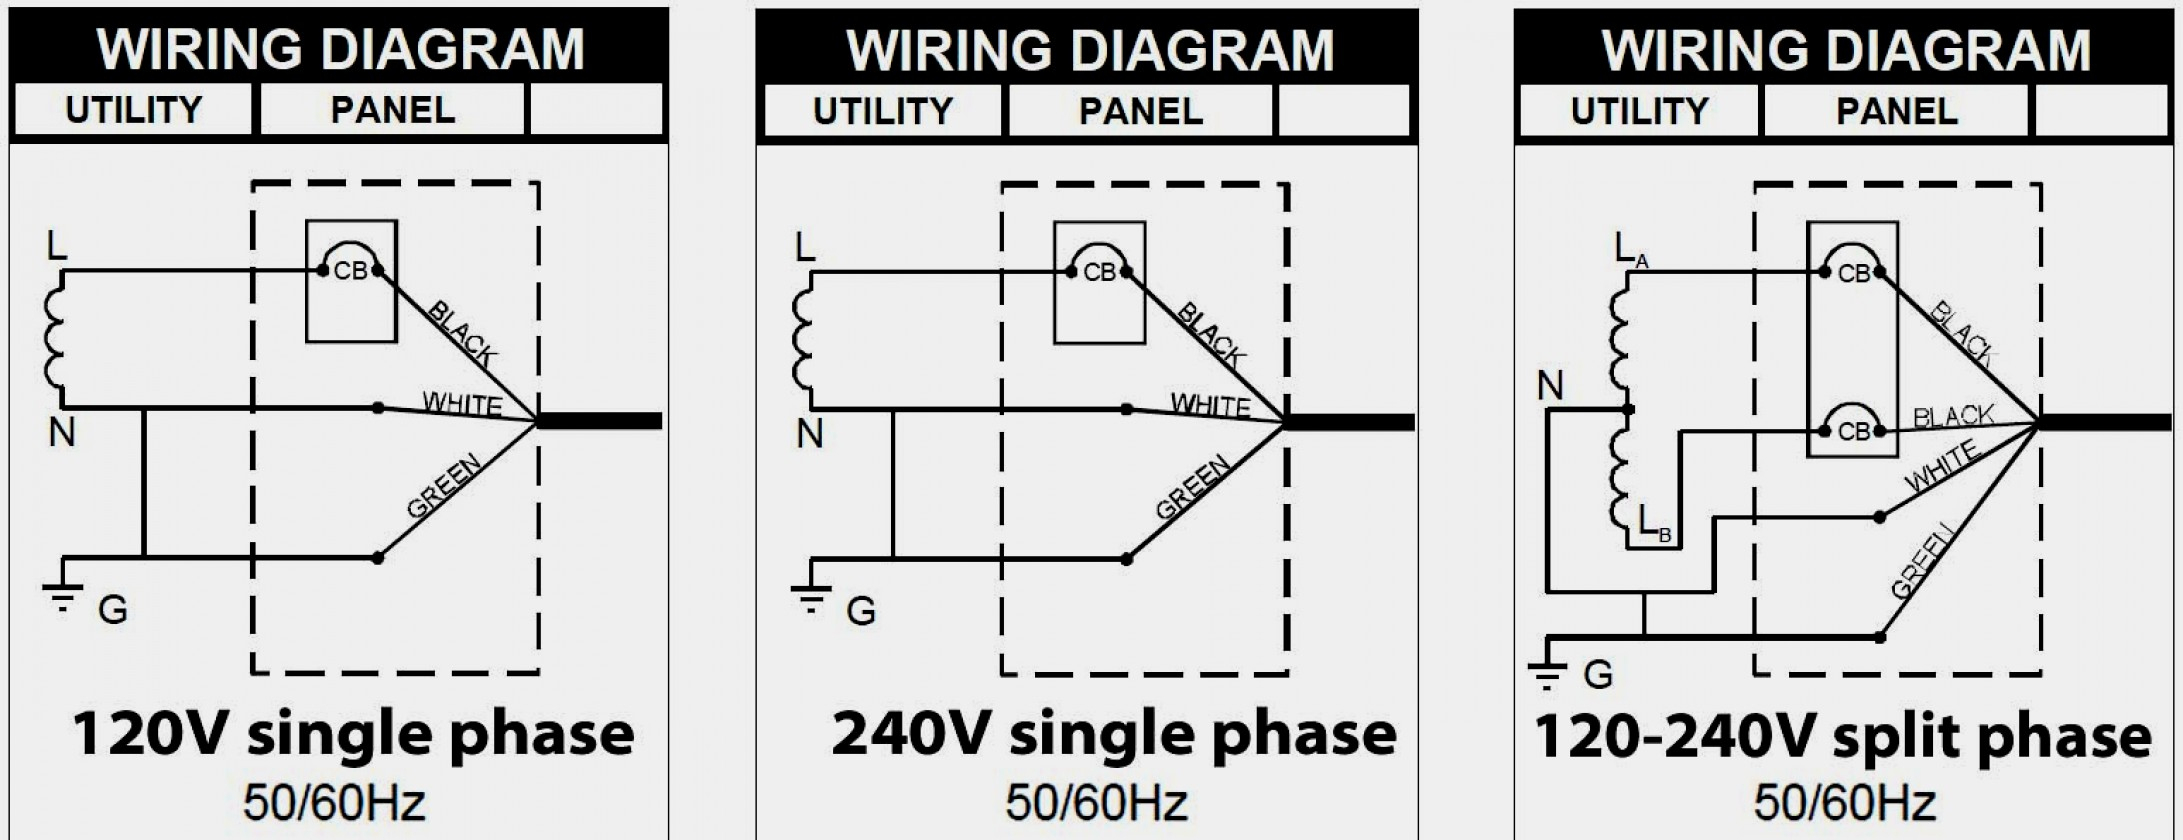 [SCHEMATICS_4FD]  DIAGRAM] Apc 20kva 208v Wiring Diagram FULL Version HD Quality Wiring  Diagram - CJWIRING.LES-CAFES-DERIC-ORLEANS.FR | 208v Motor Wiring Diagrams |  | Best Diagram Database